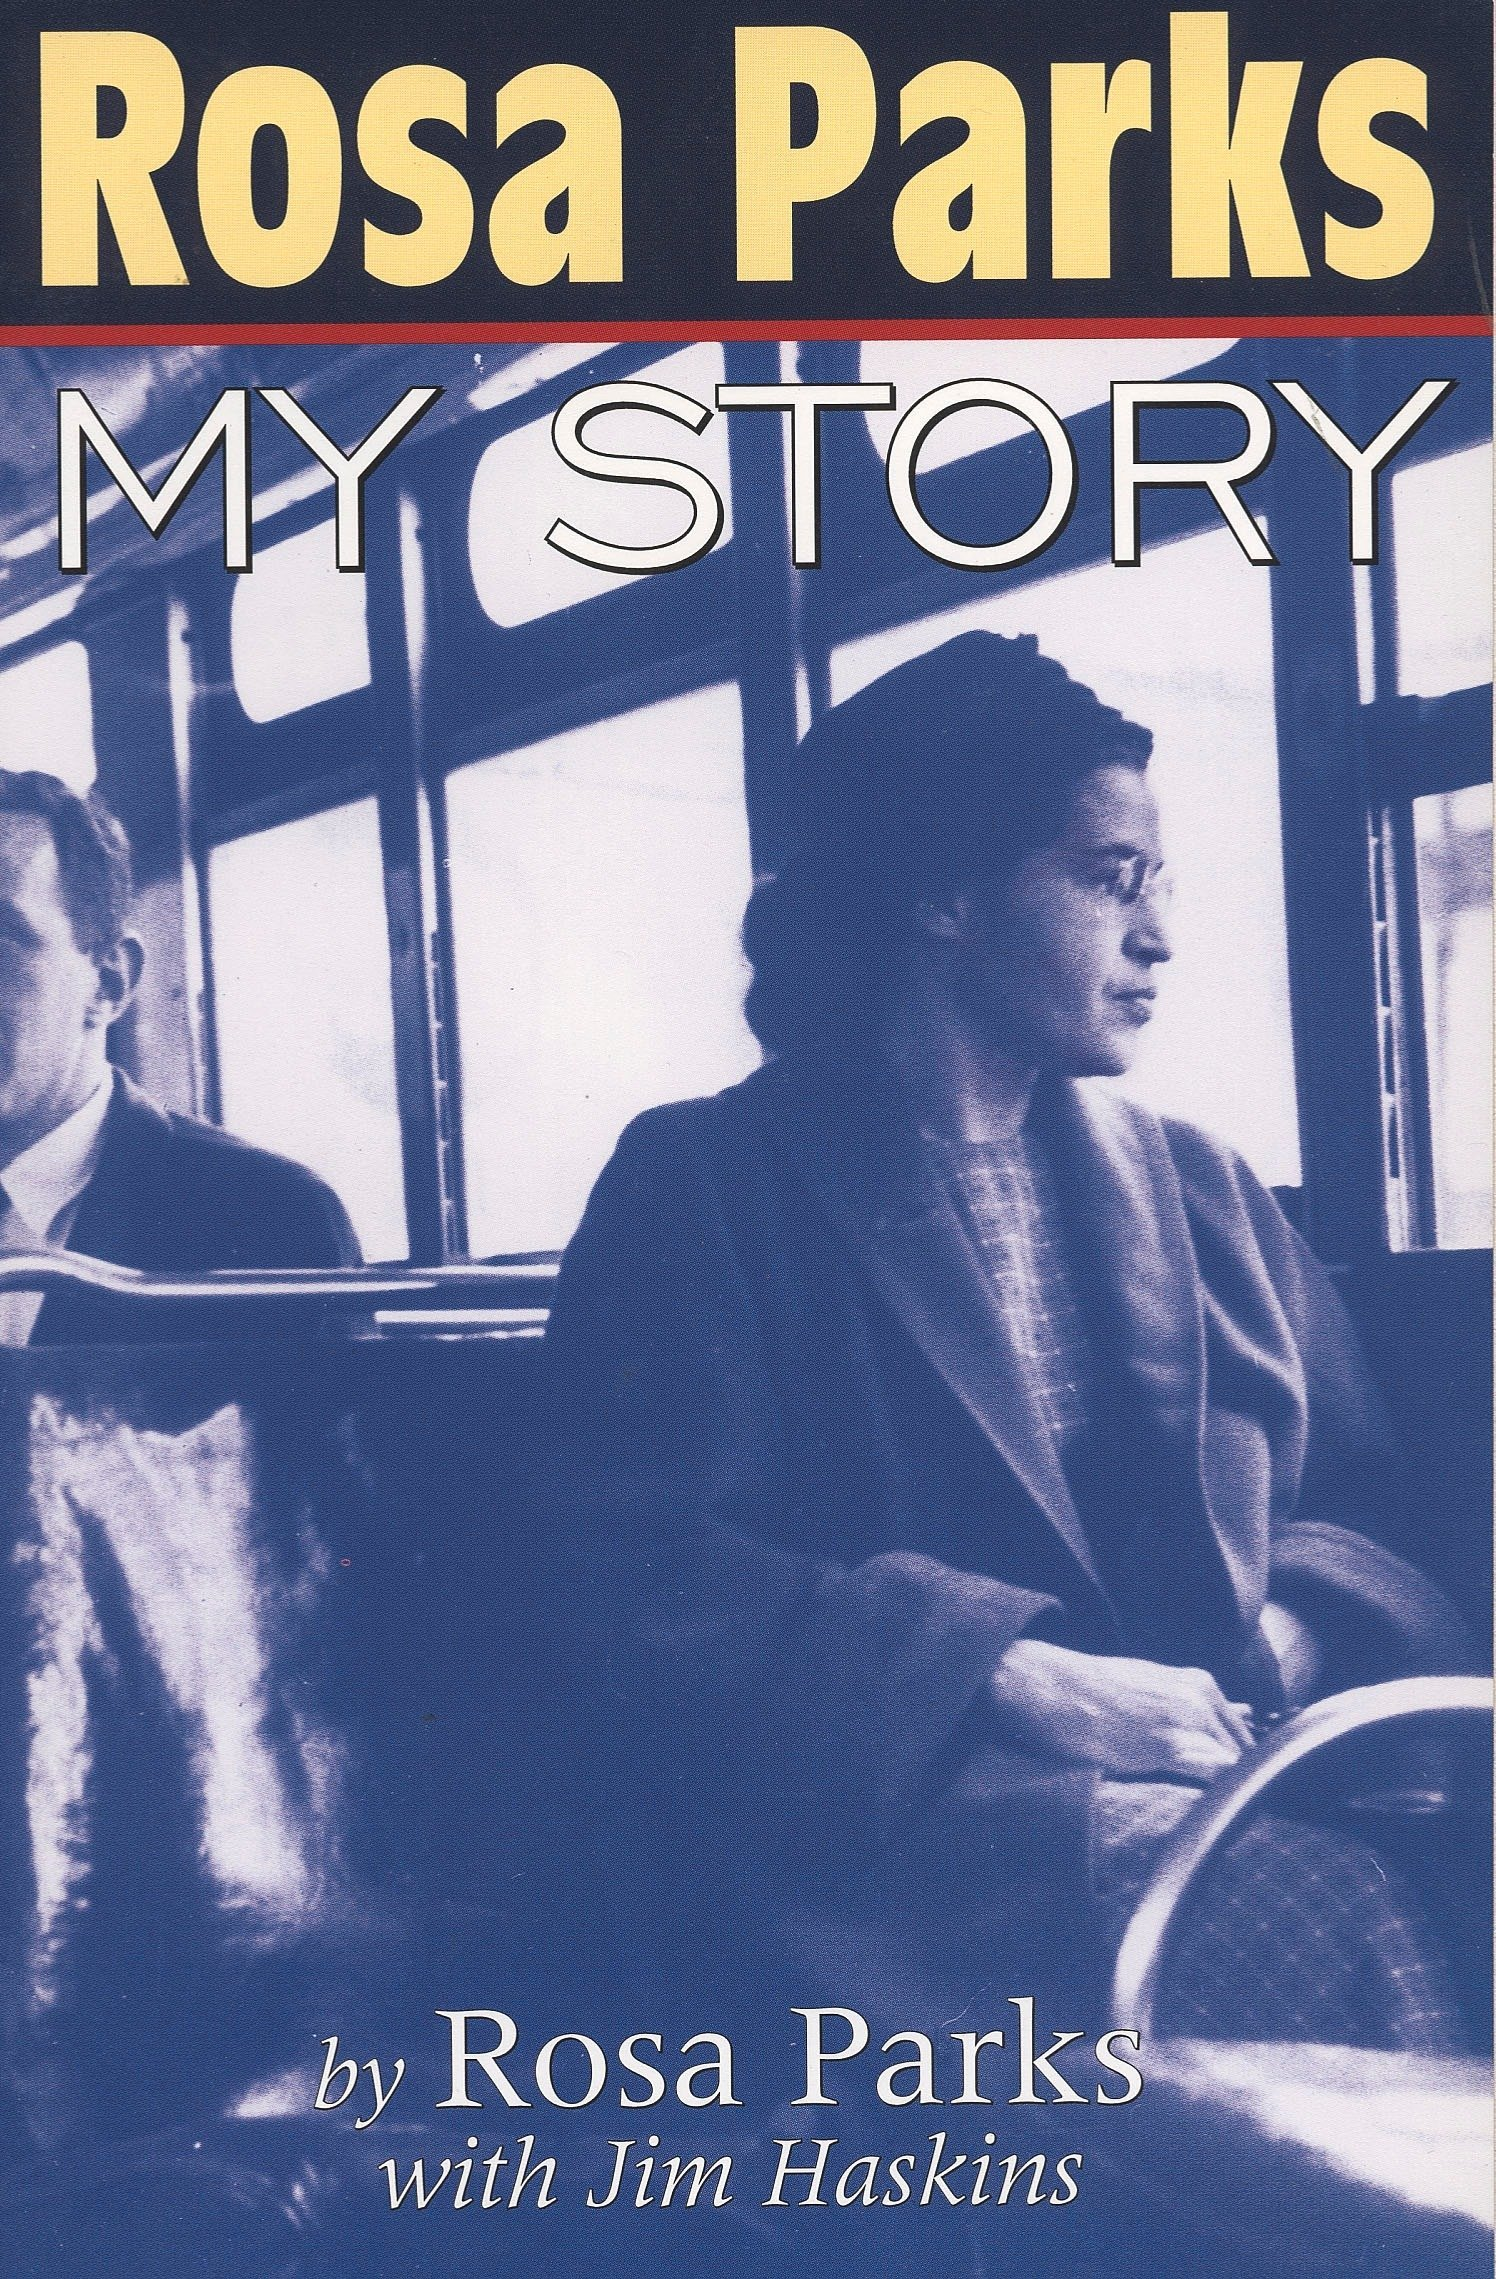 Rosa Parks My Story Amazon Co Uk Jim Haskins Rosa Parks